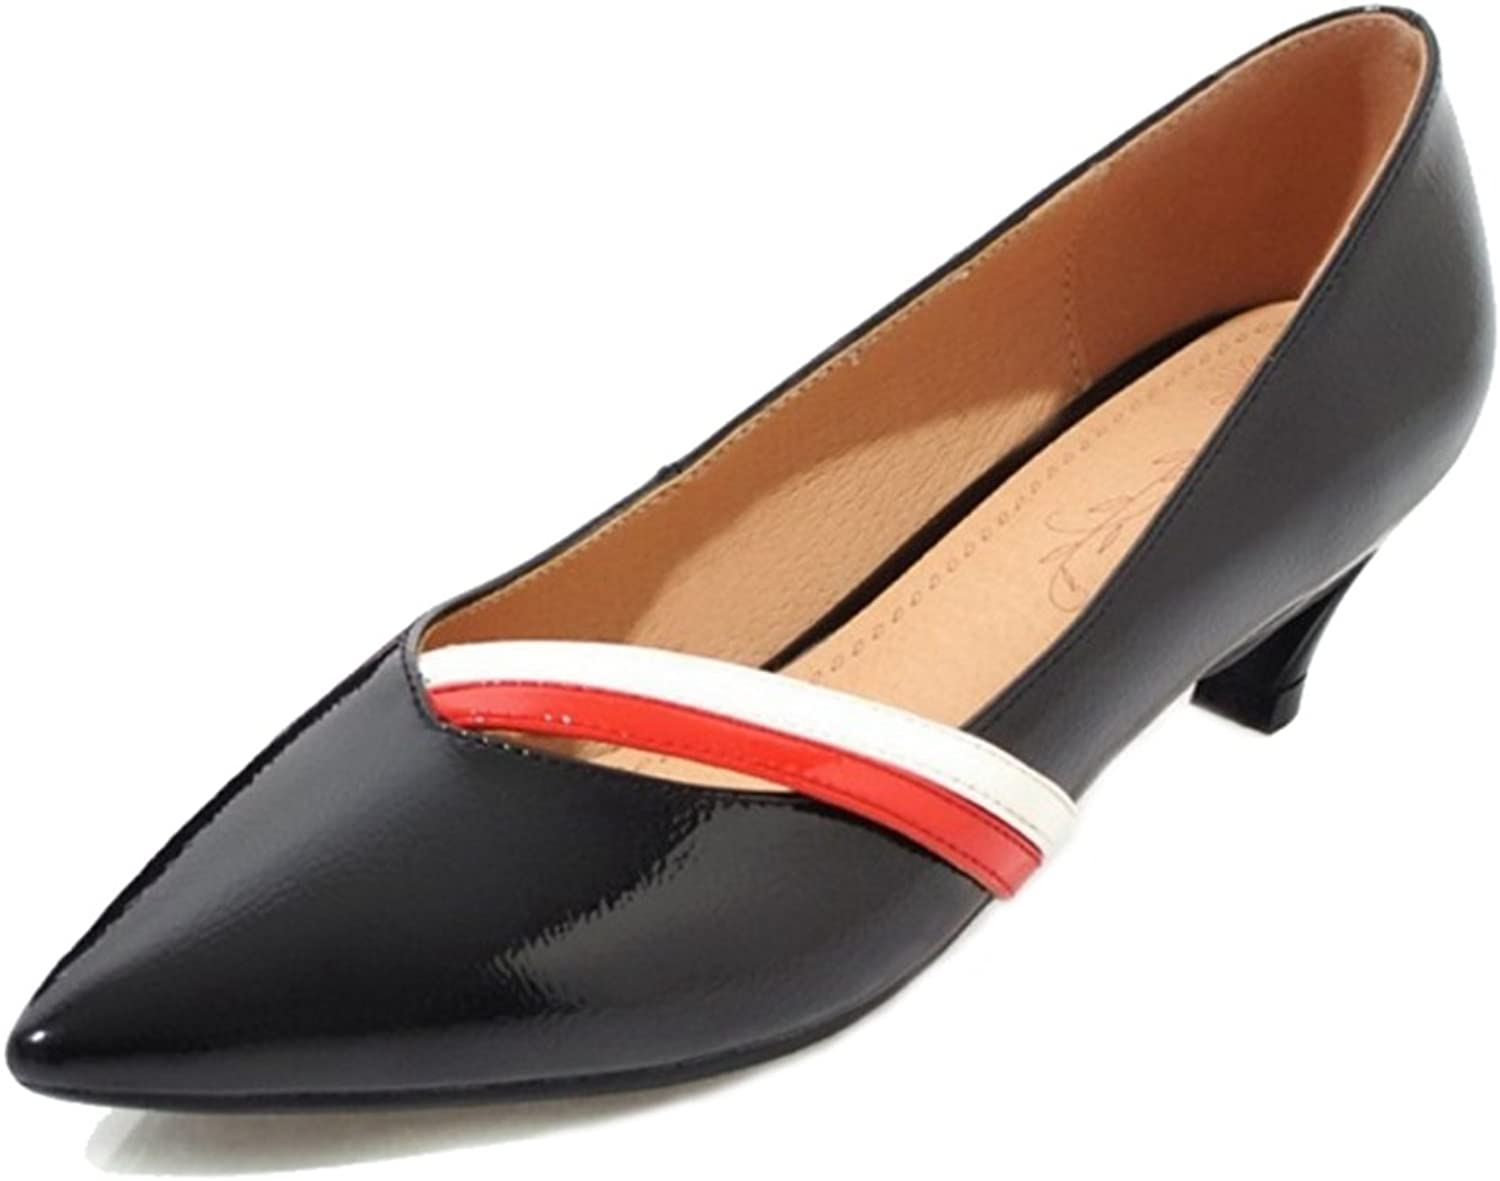 CUTEHEELS Women Pumps with Pointed Toe and Kitten Heel Casual shoes for All Occasions